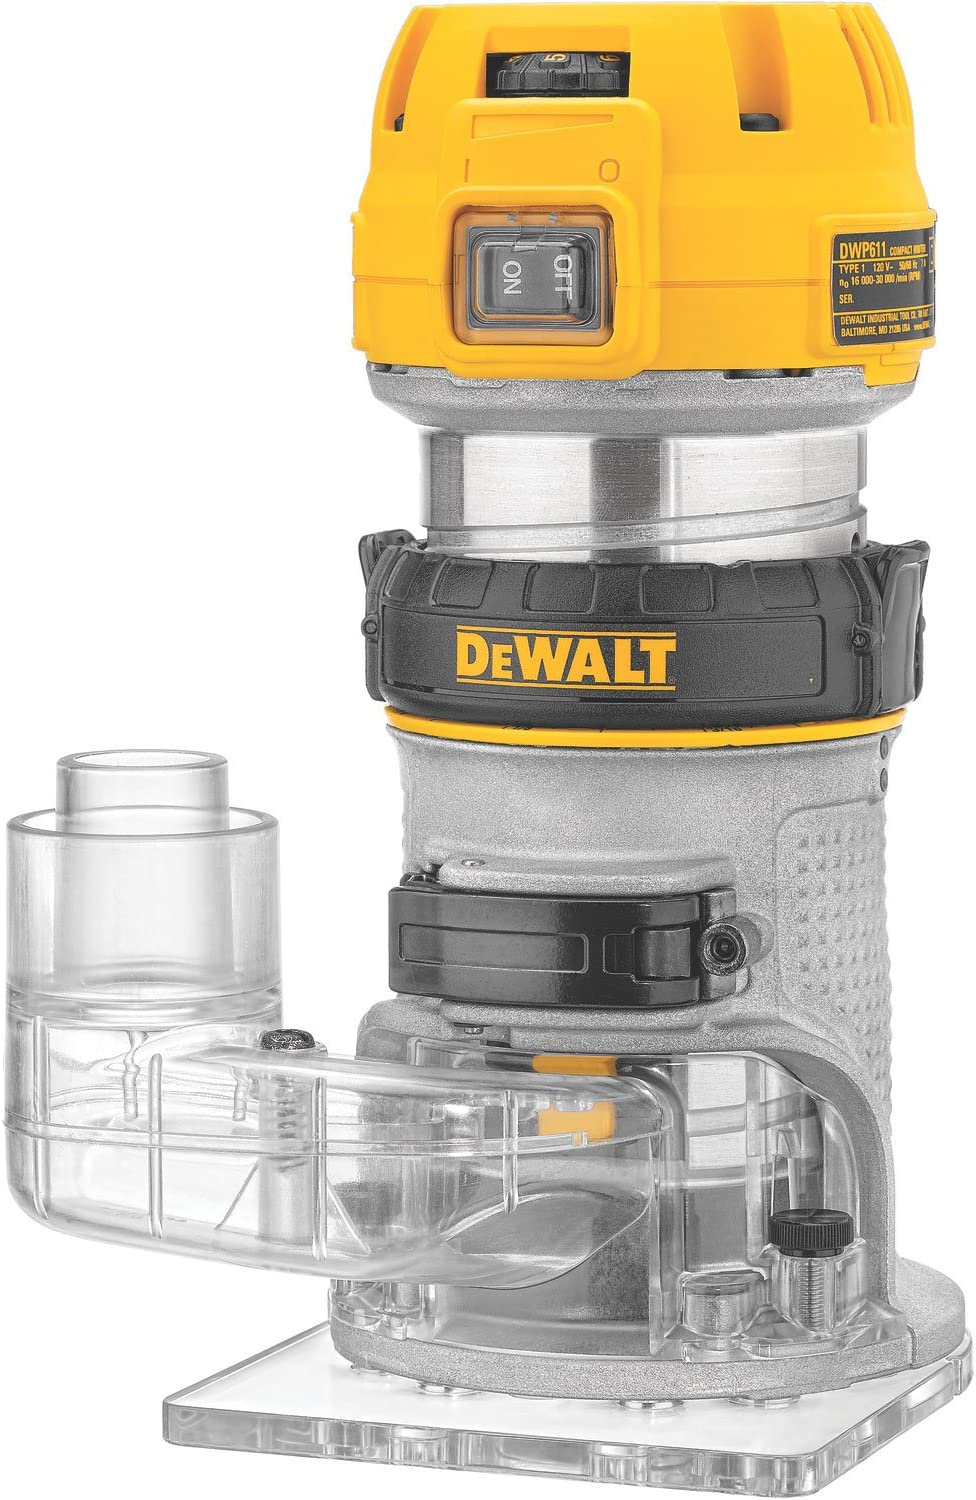 Dewalt Universal Router Edge Guide Dust Collection System Collector Accessory